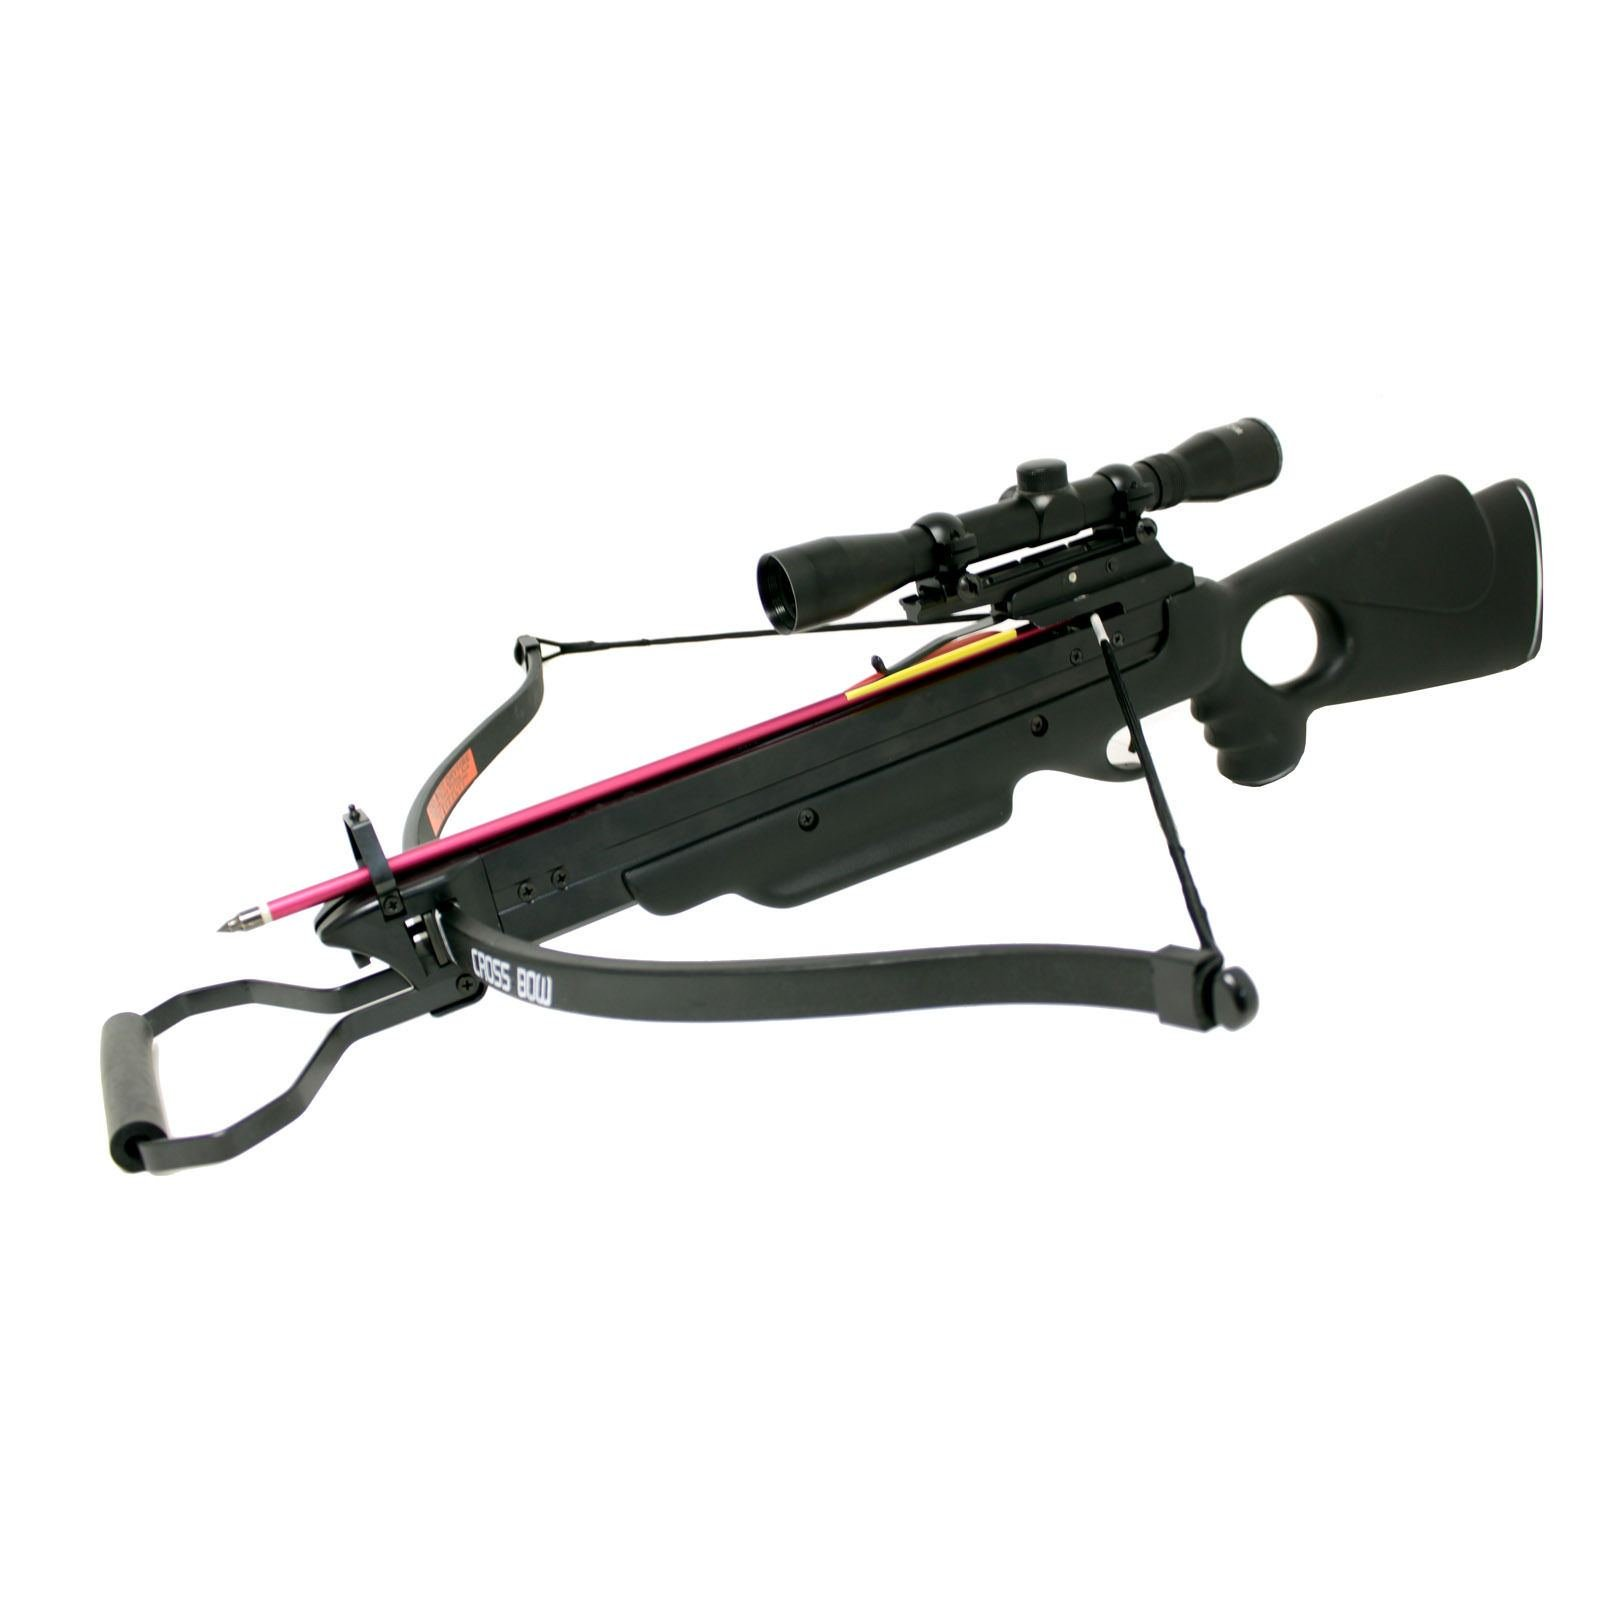 Hunting Crossbows 150 lbs Wizard Black Hunting Crossbow + 4x32 Scope + 8 Arrows Crossbow Bolts